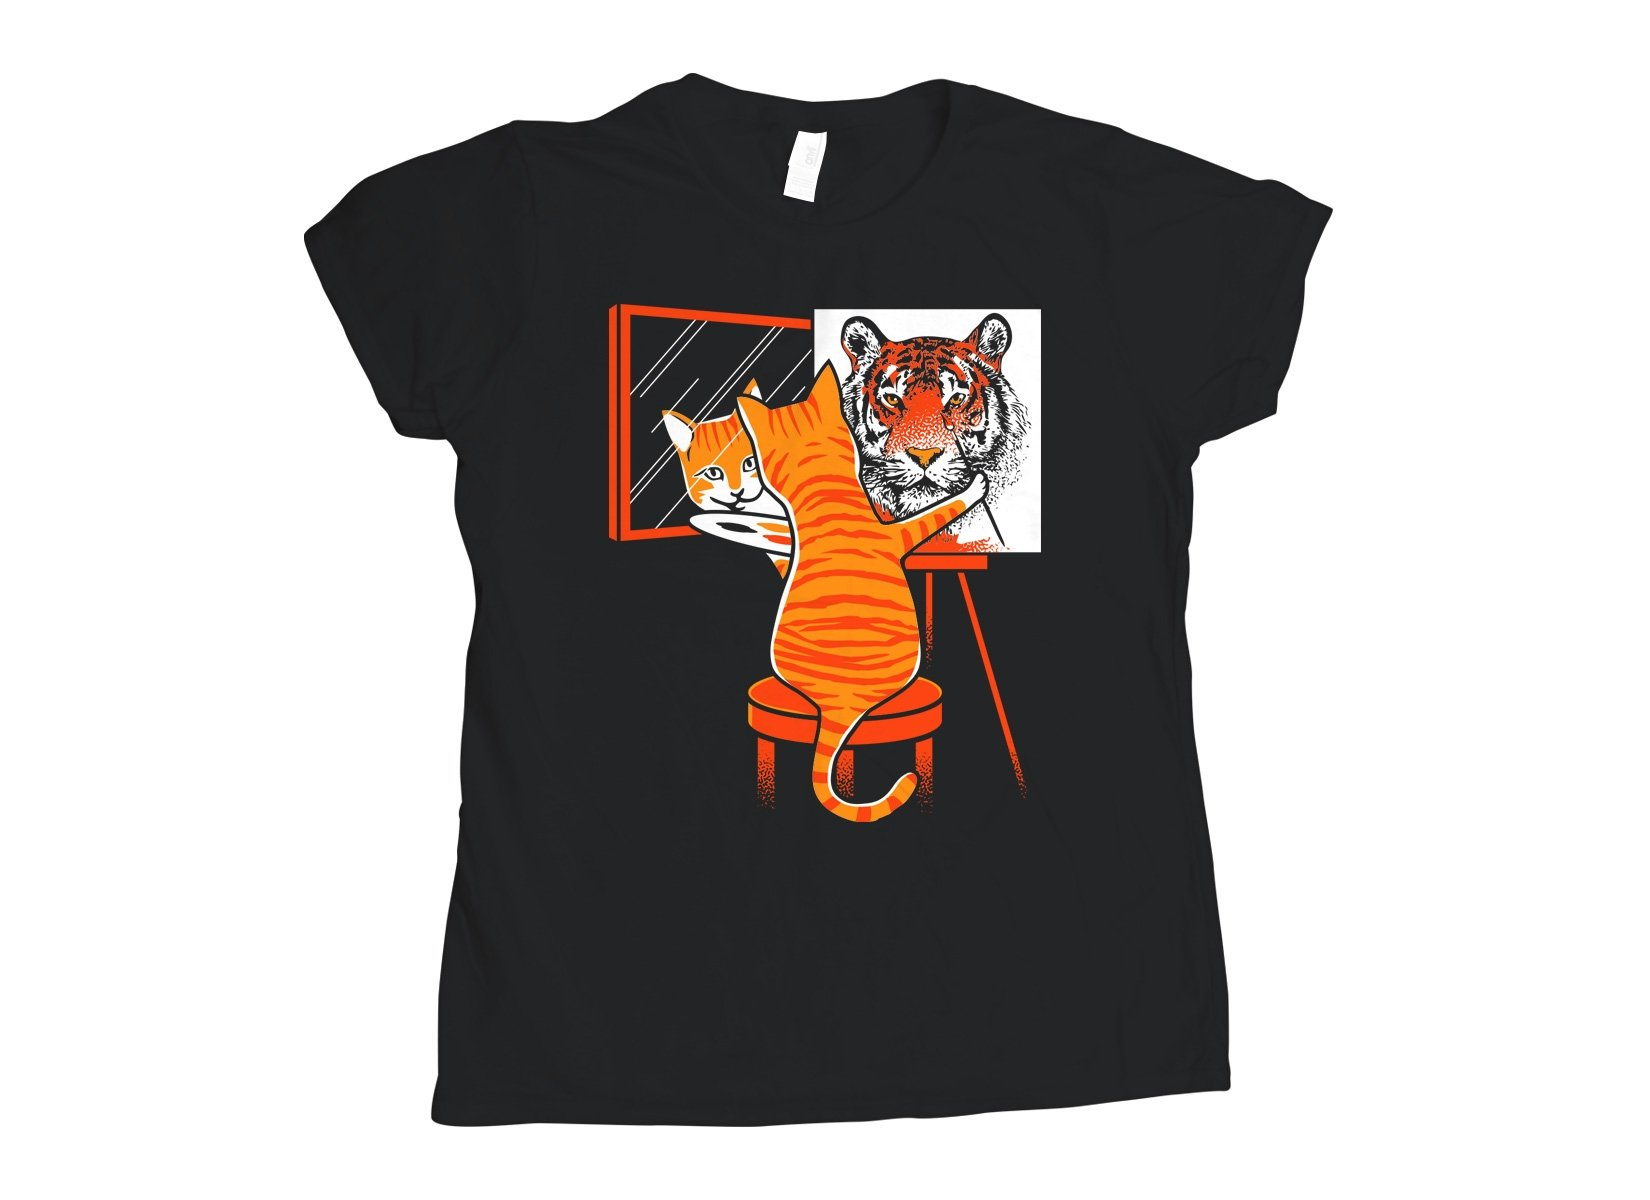 Cat Self Portrait on Womens T-Shirt